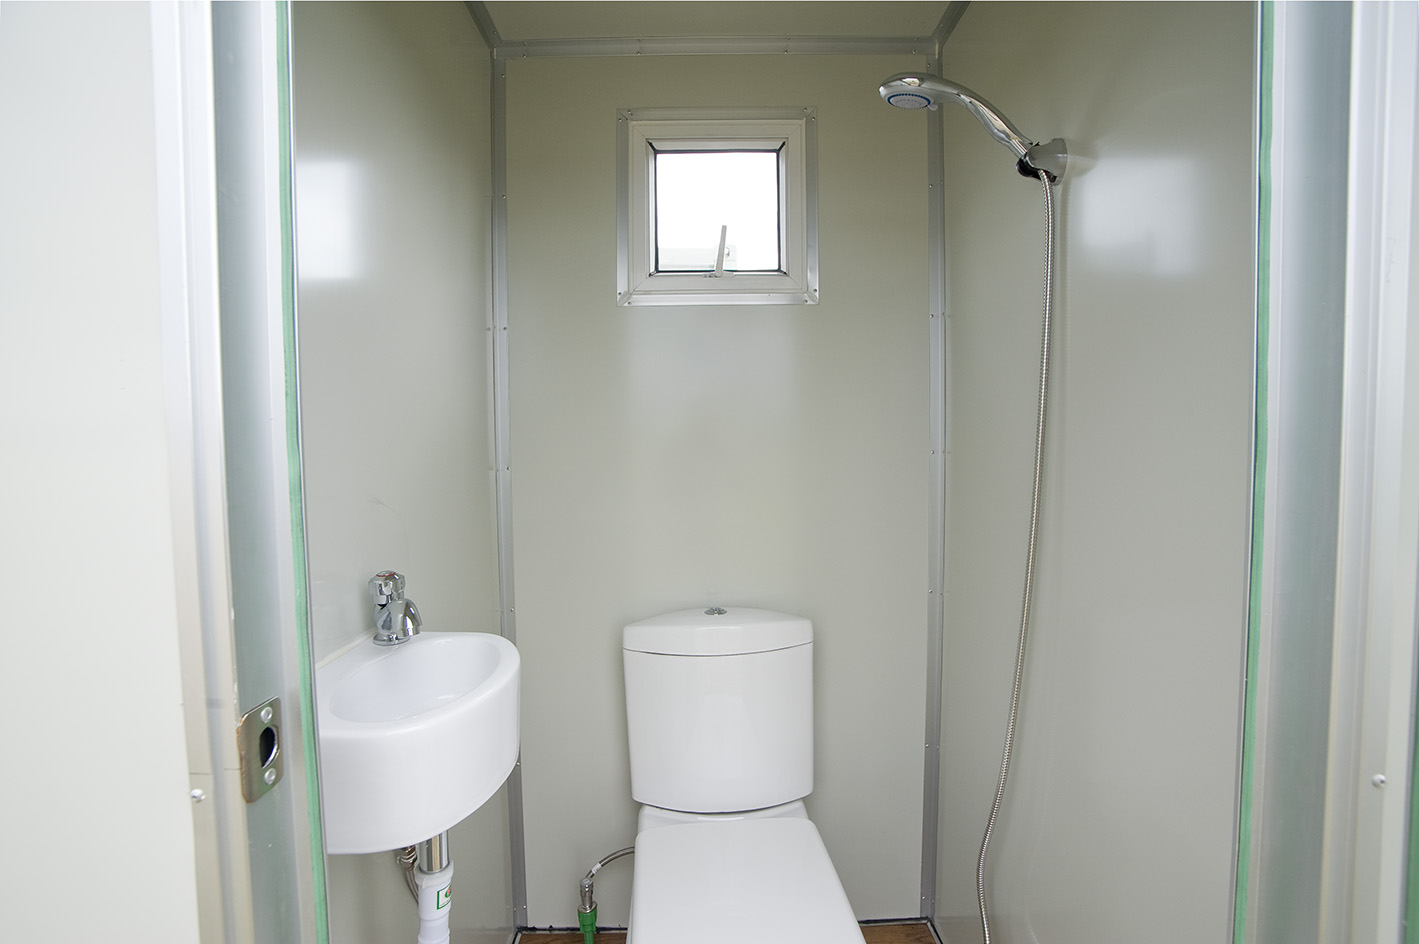 Small bathroom gallery for Small bathroom pictures gallery